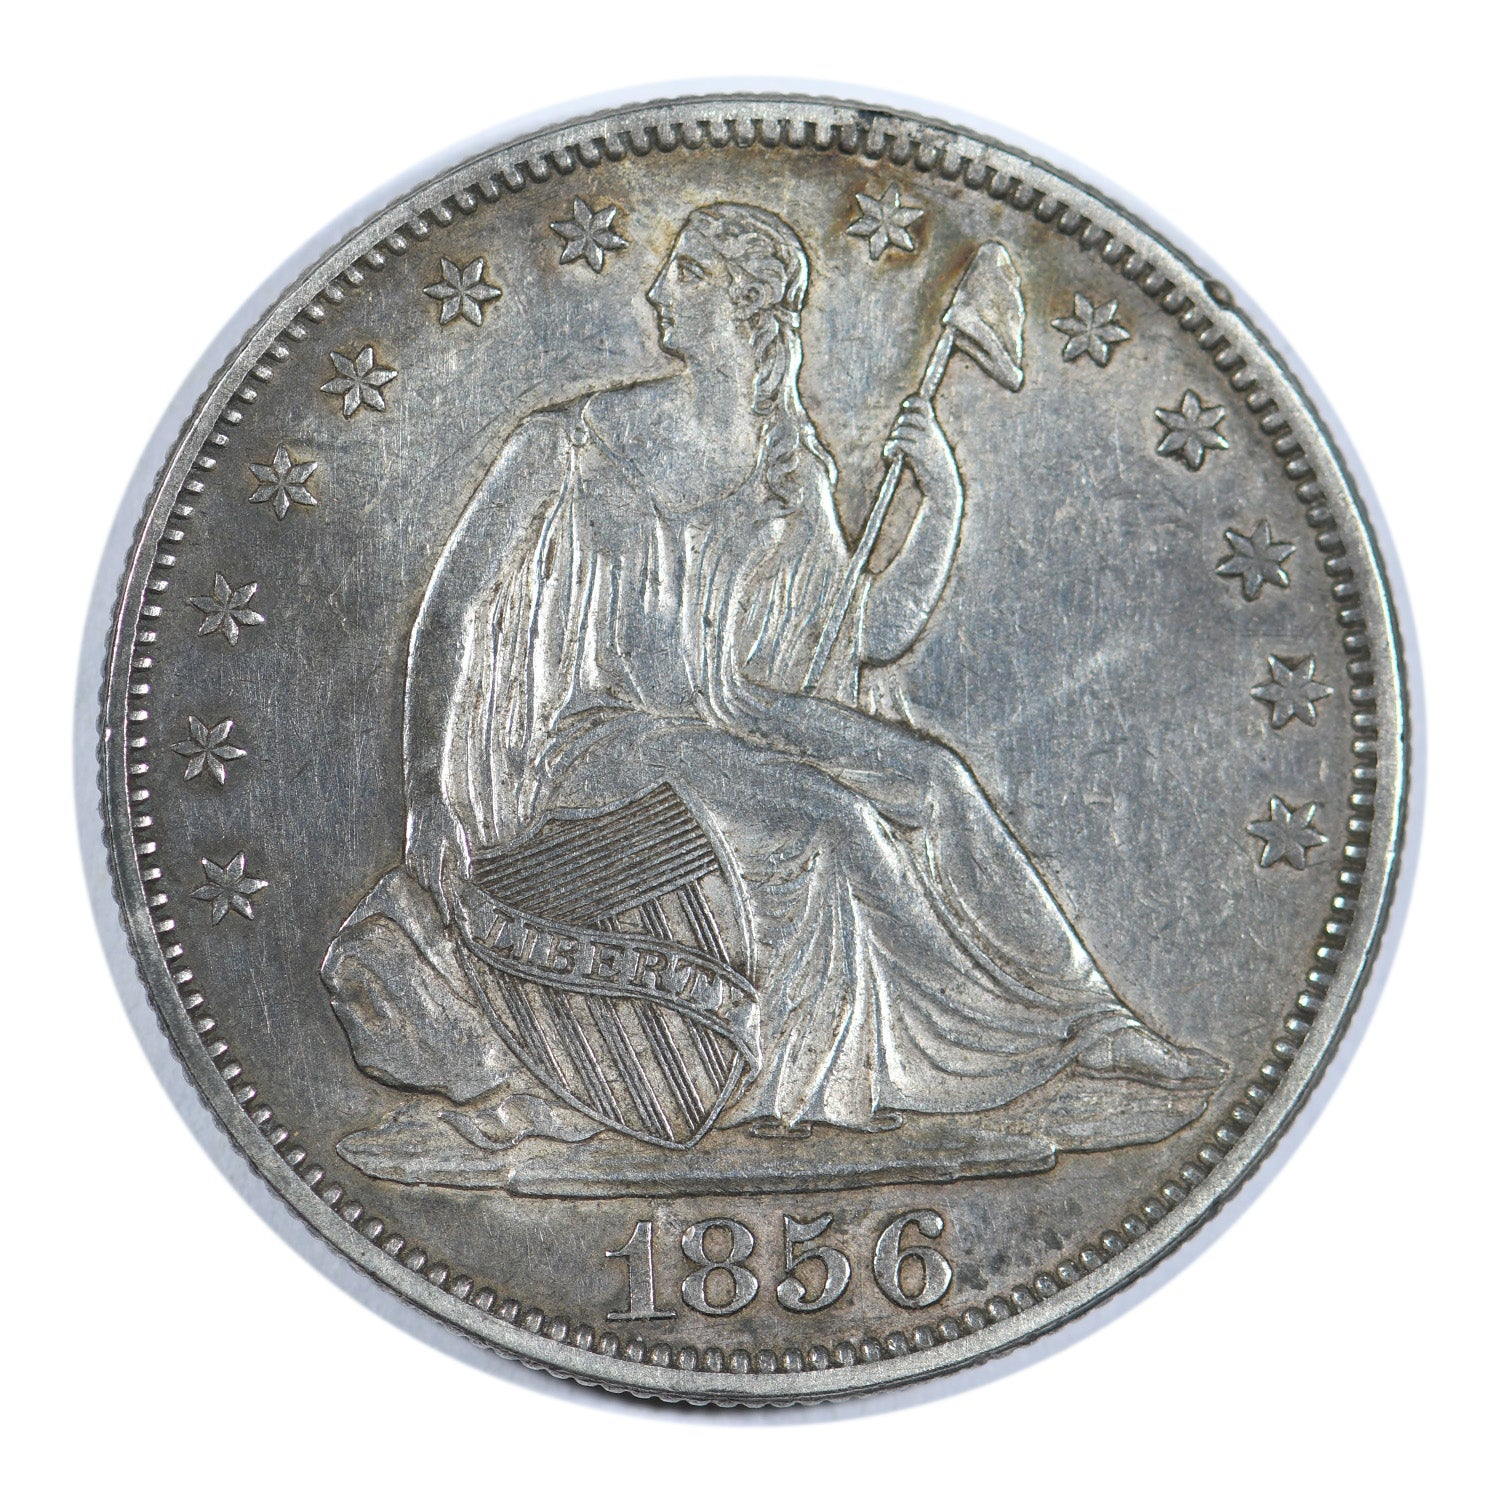 1856 Seated Liberty Half Dollar Extra Fine Condition